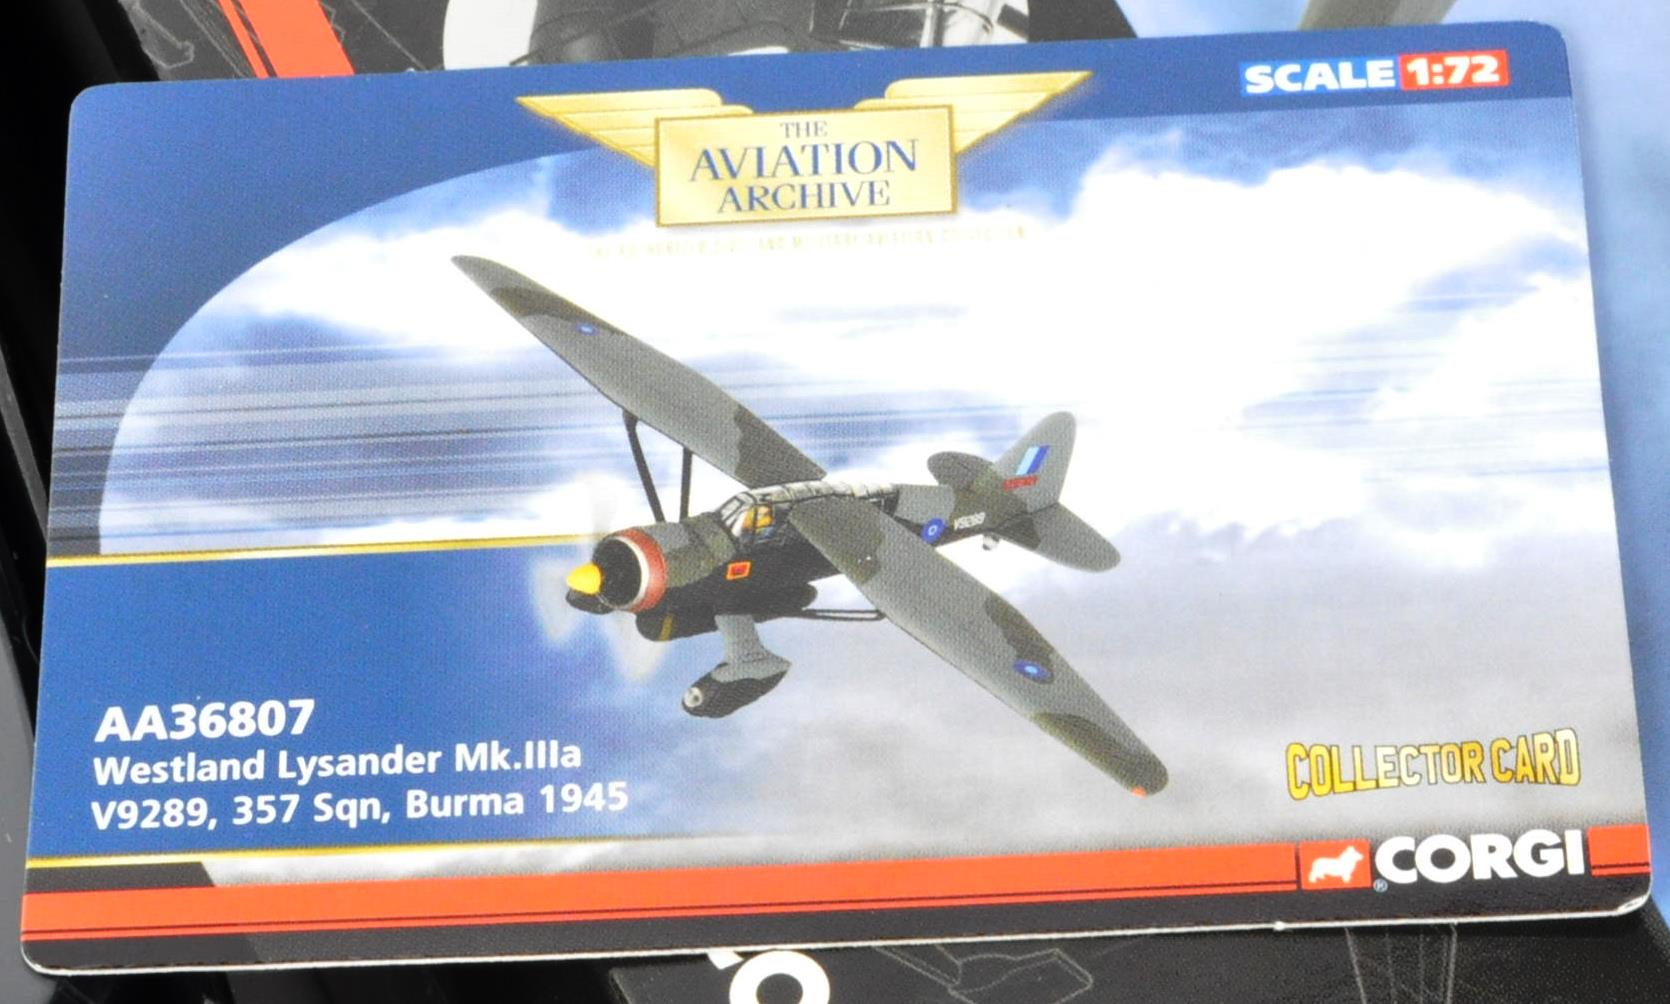 CORGI AVIATION ARCHIVE - TWO BOXED 1/72 SCALE LIMITED EDITION MODELS - Image 4 of 5